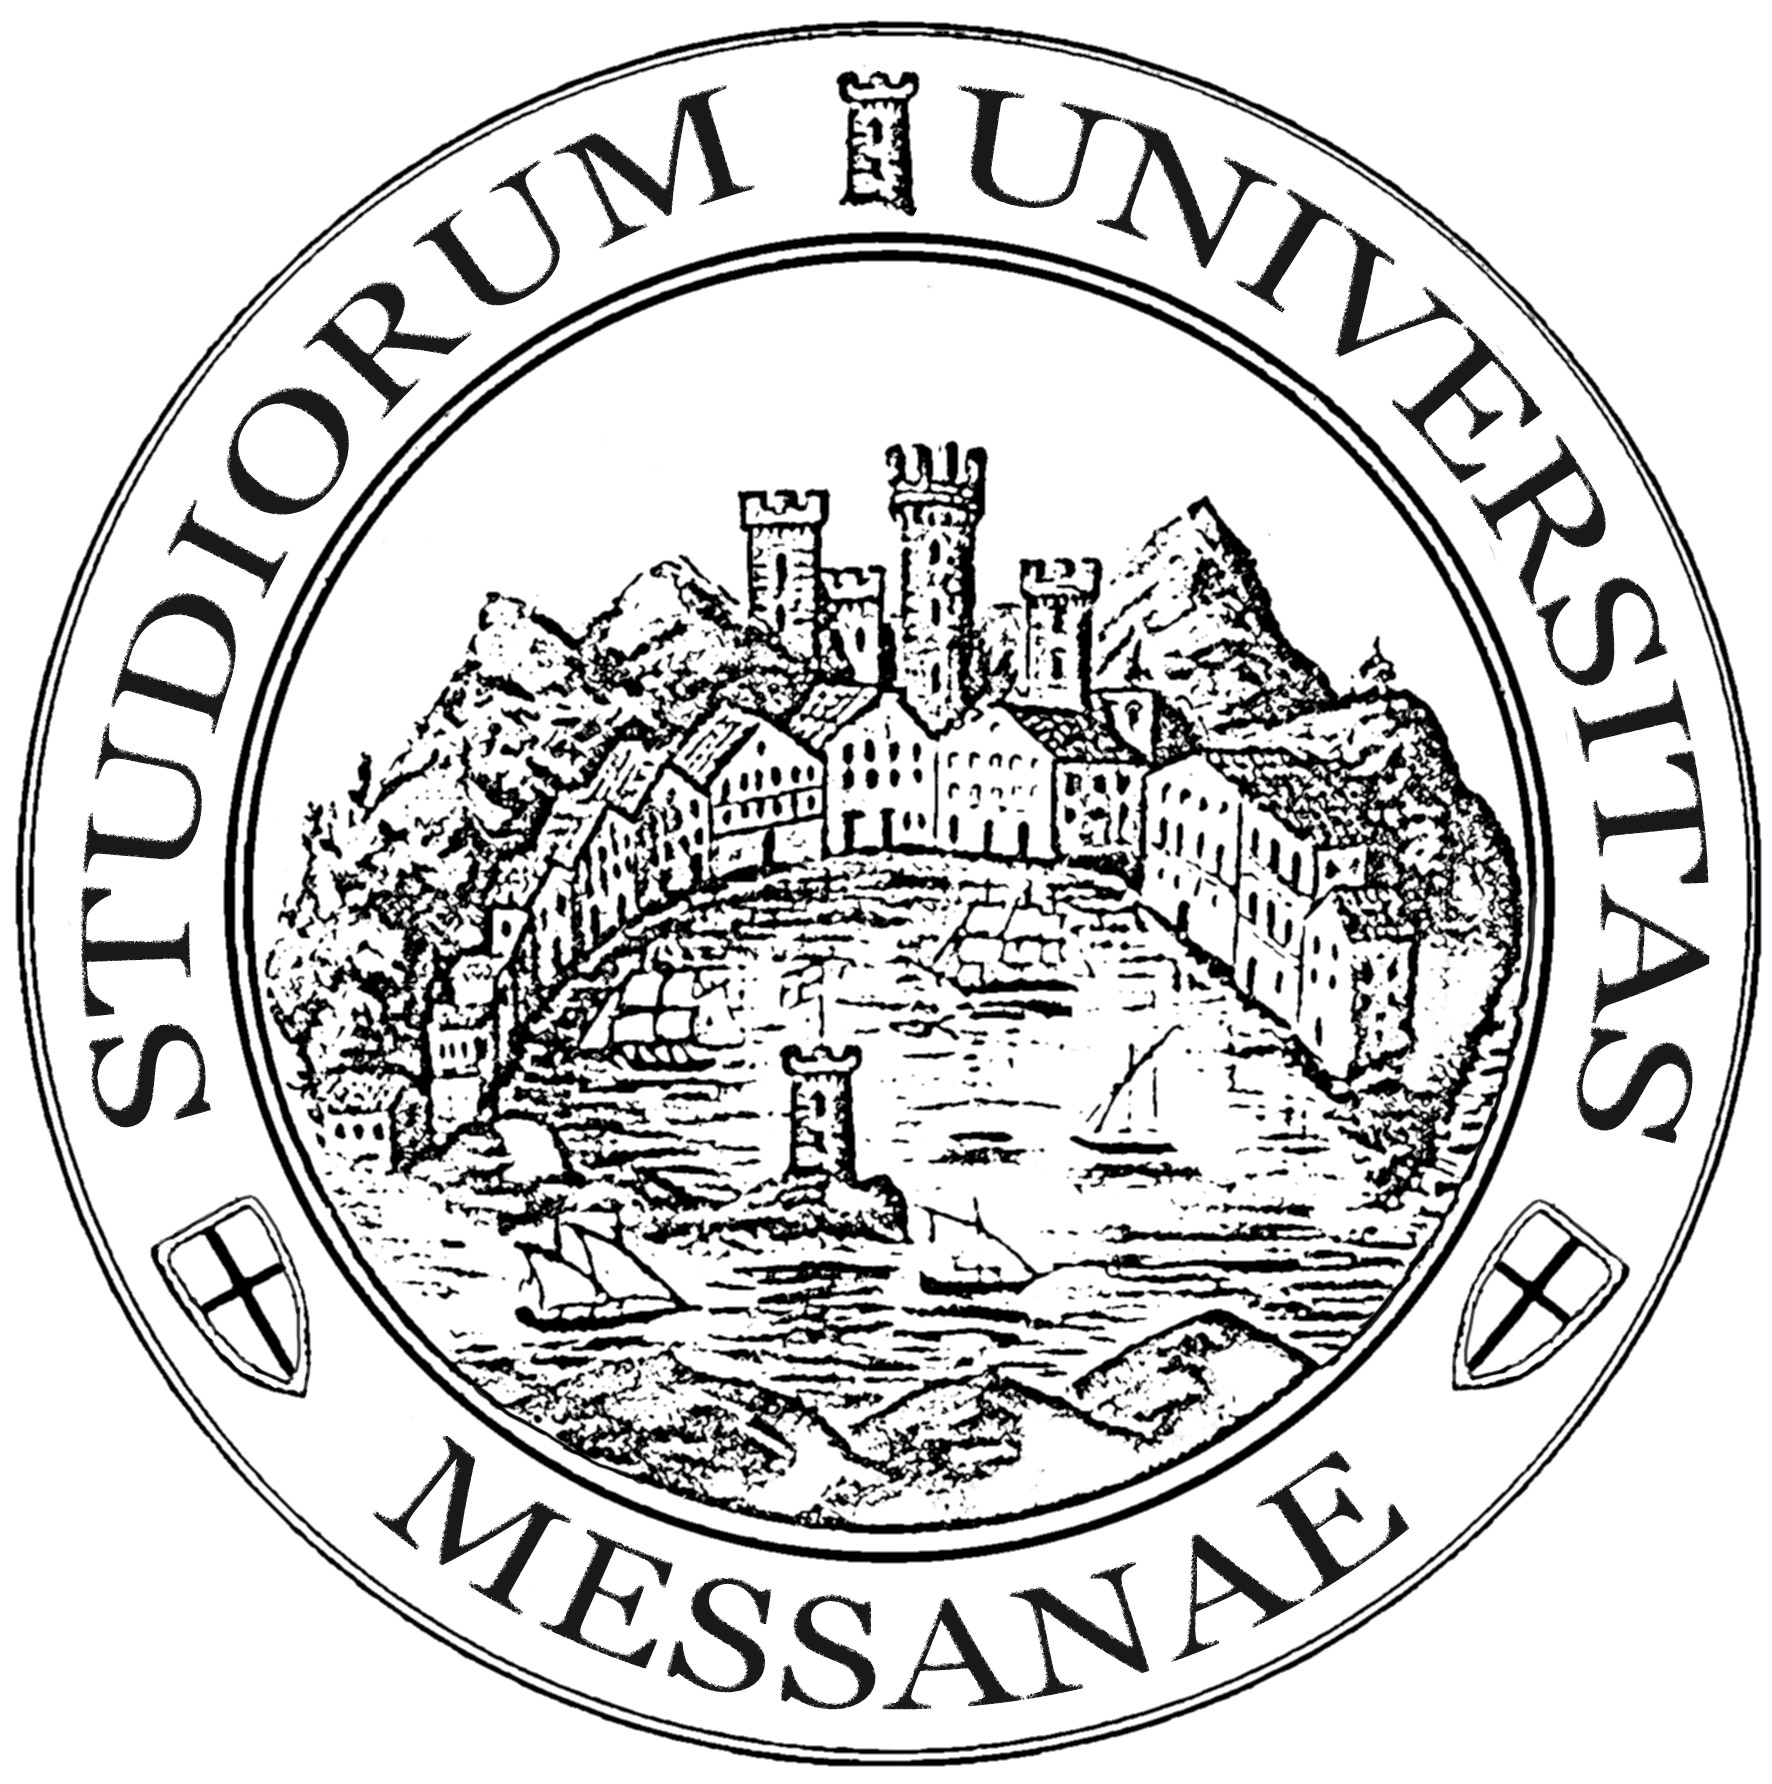 logo-universita-di-messina